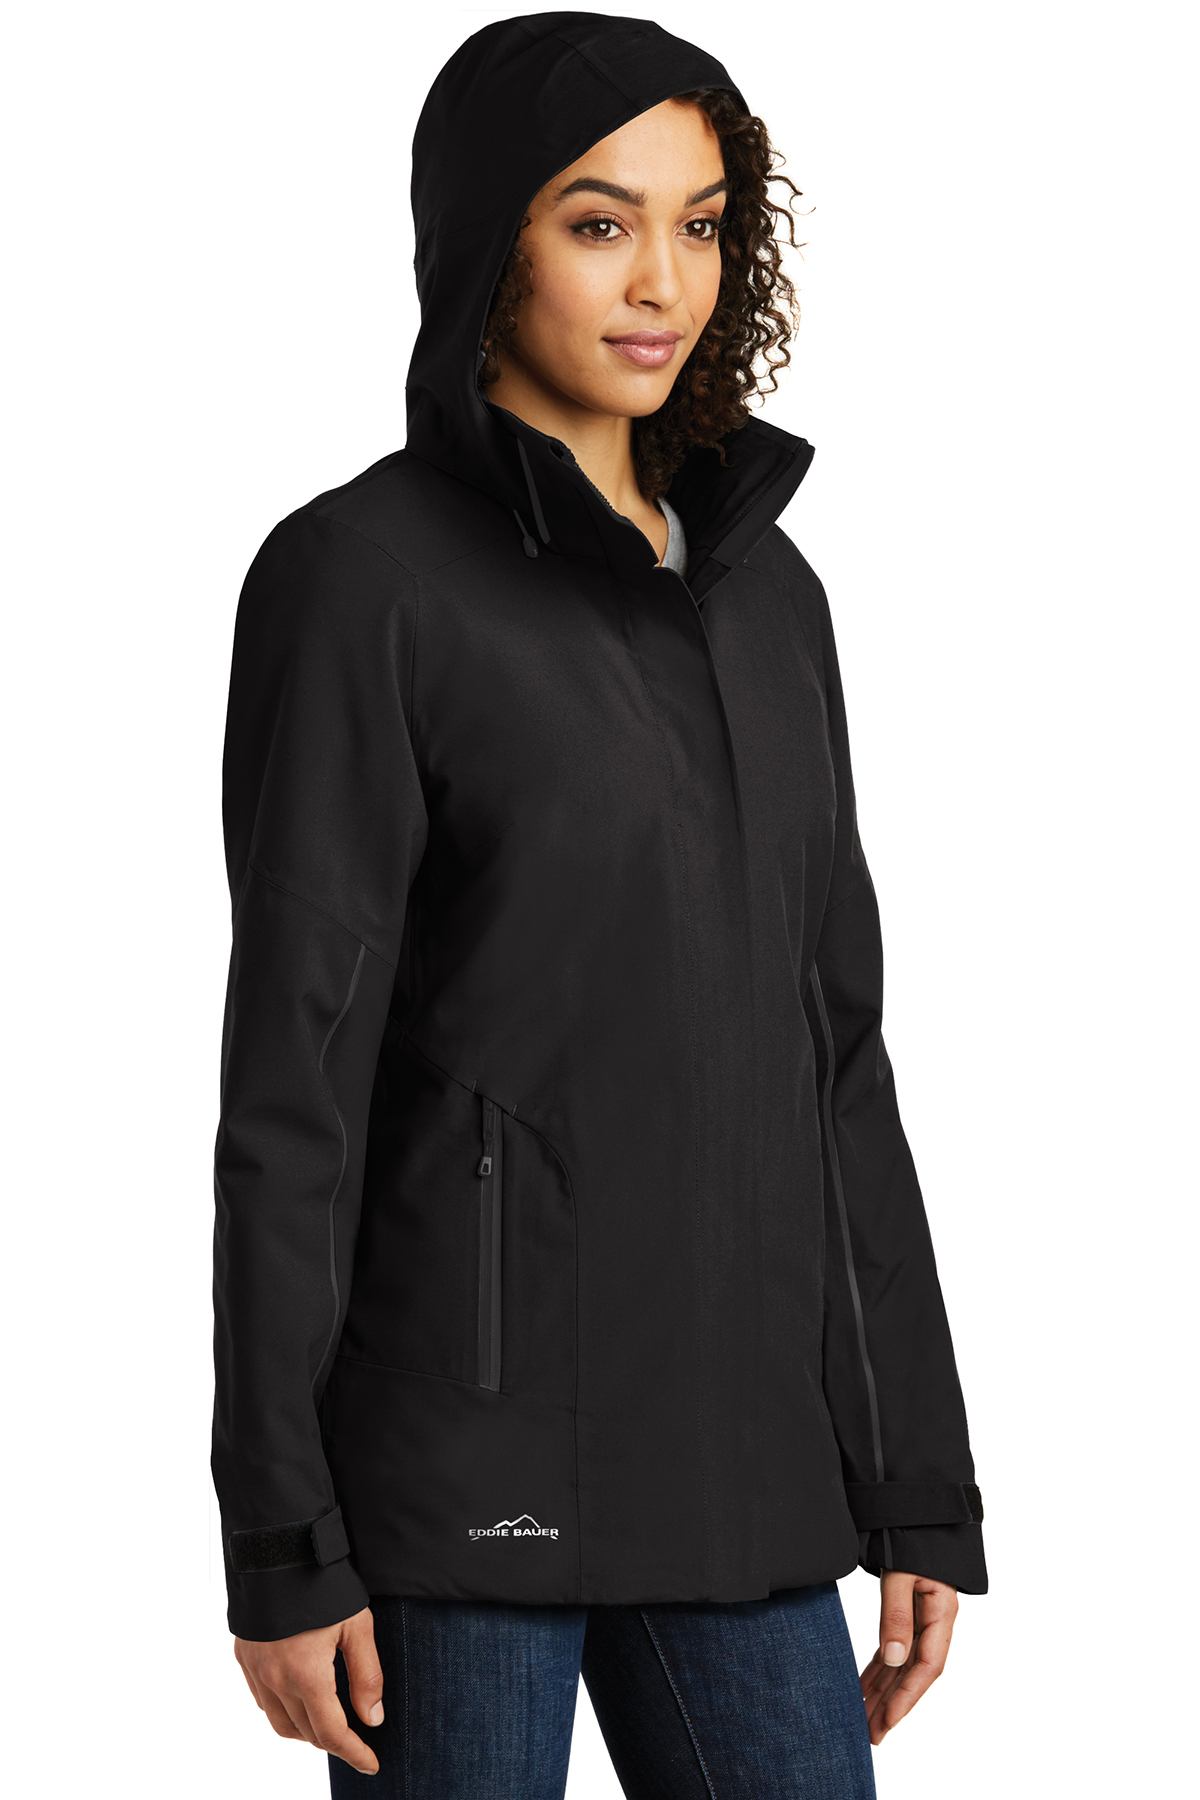 d2347eb78 Eddie Bauer® Ladies WeatherEdge® Plus Insulated Jacket | Insulated ...